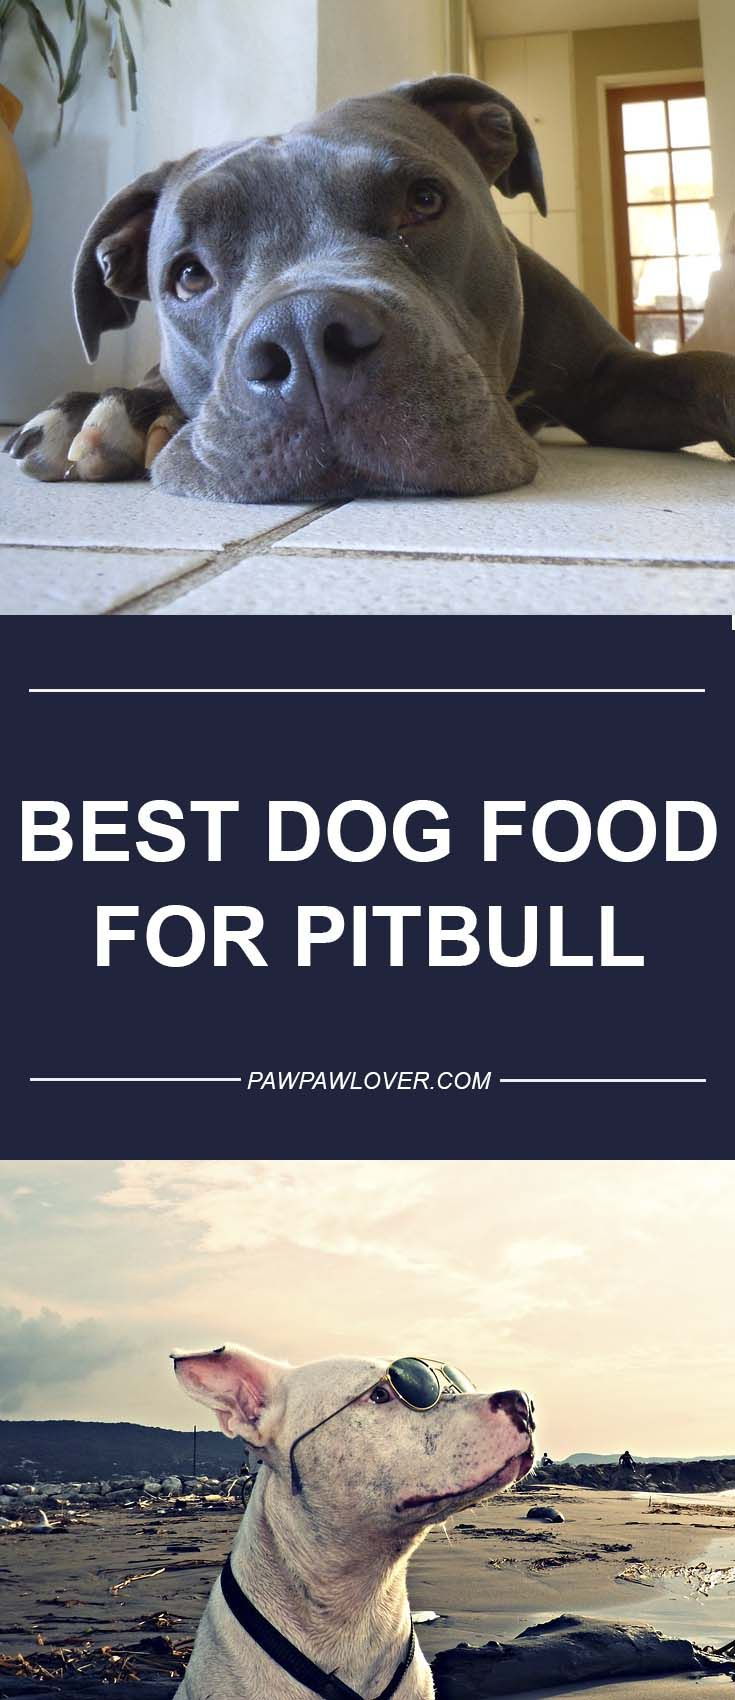 10 Best Dog Foods For Pitbulls Our 2020 Bully Feeding Guide